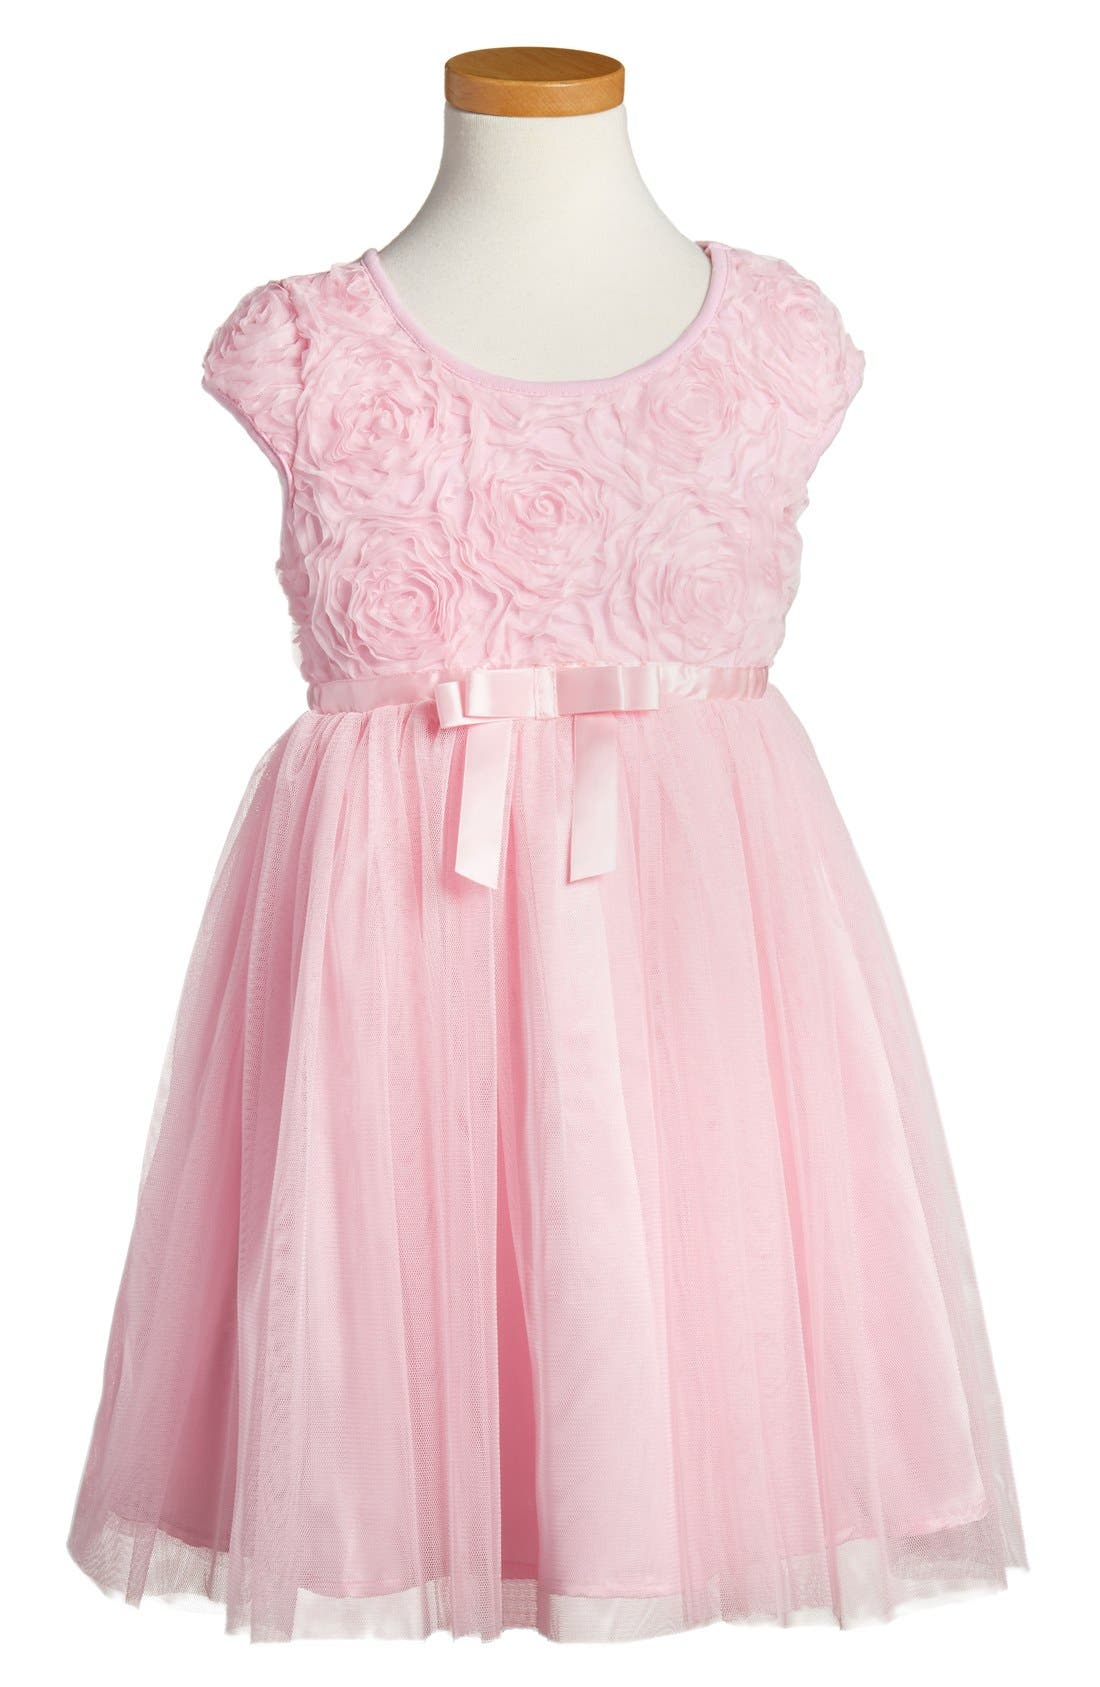 Main Image - Popatu Ribbon Rosette Tulle Dress (Little Girls & Big Girls)